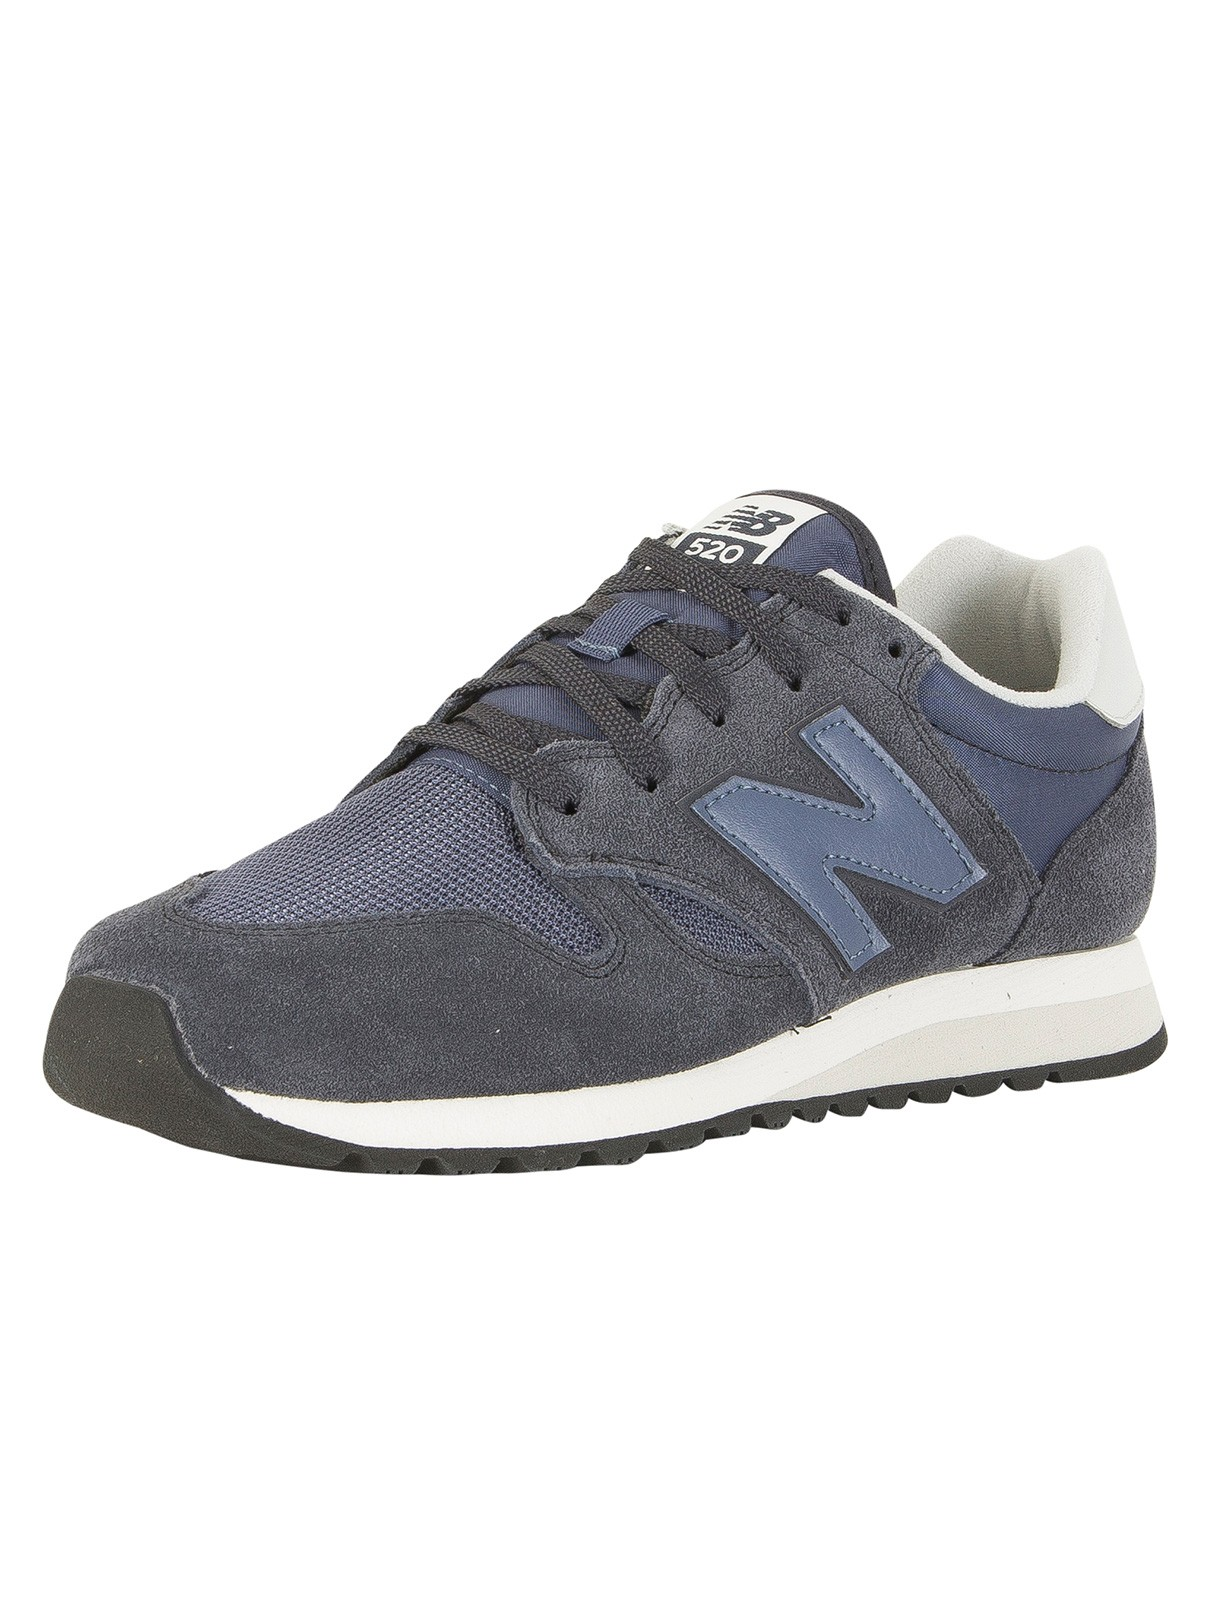 New Balance 520 Trainers Navy